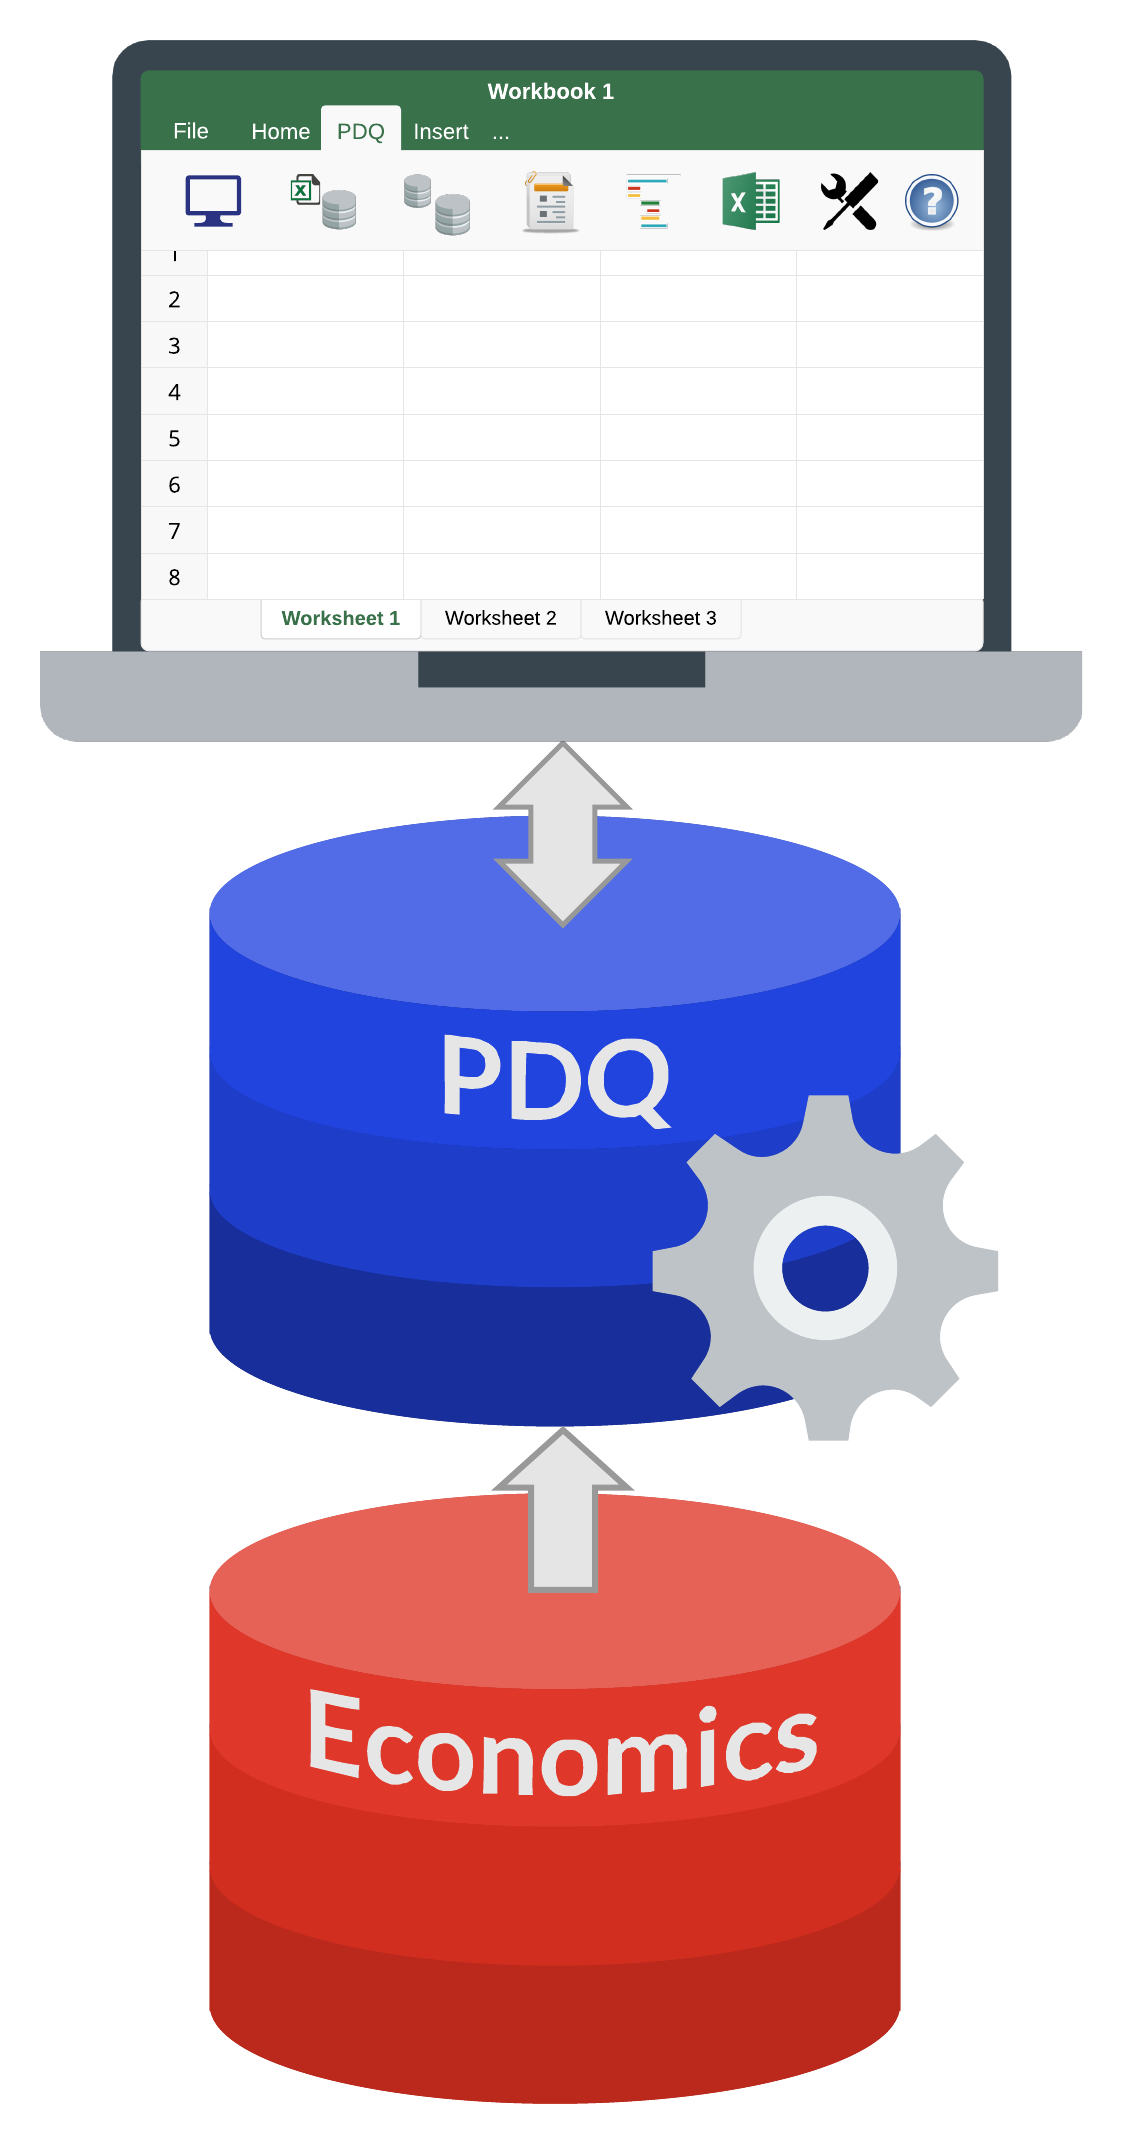 PDQ database drawing data from economics database and relaying it to Excel user interface.